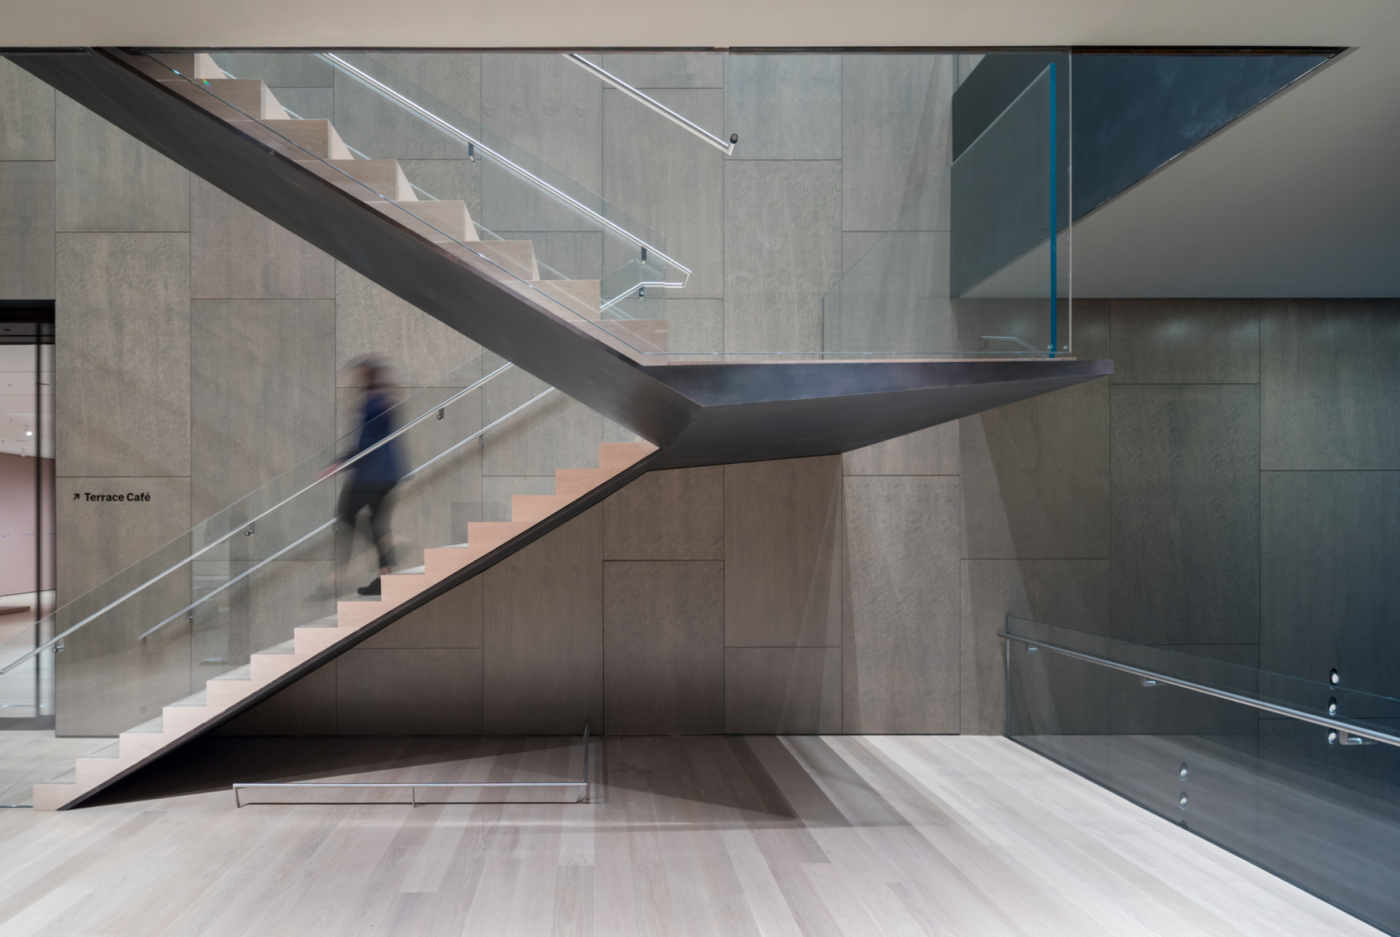 18 Moma Photography By Iwan Baan